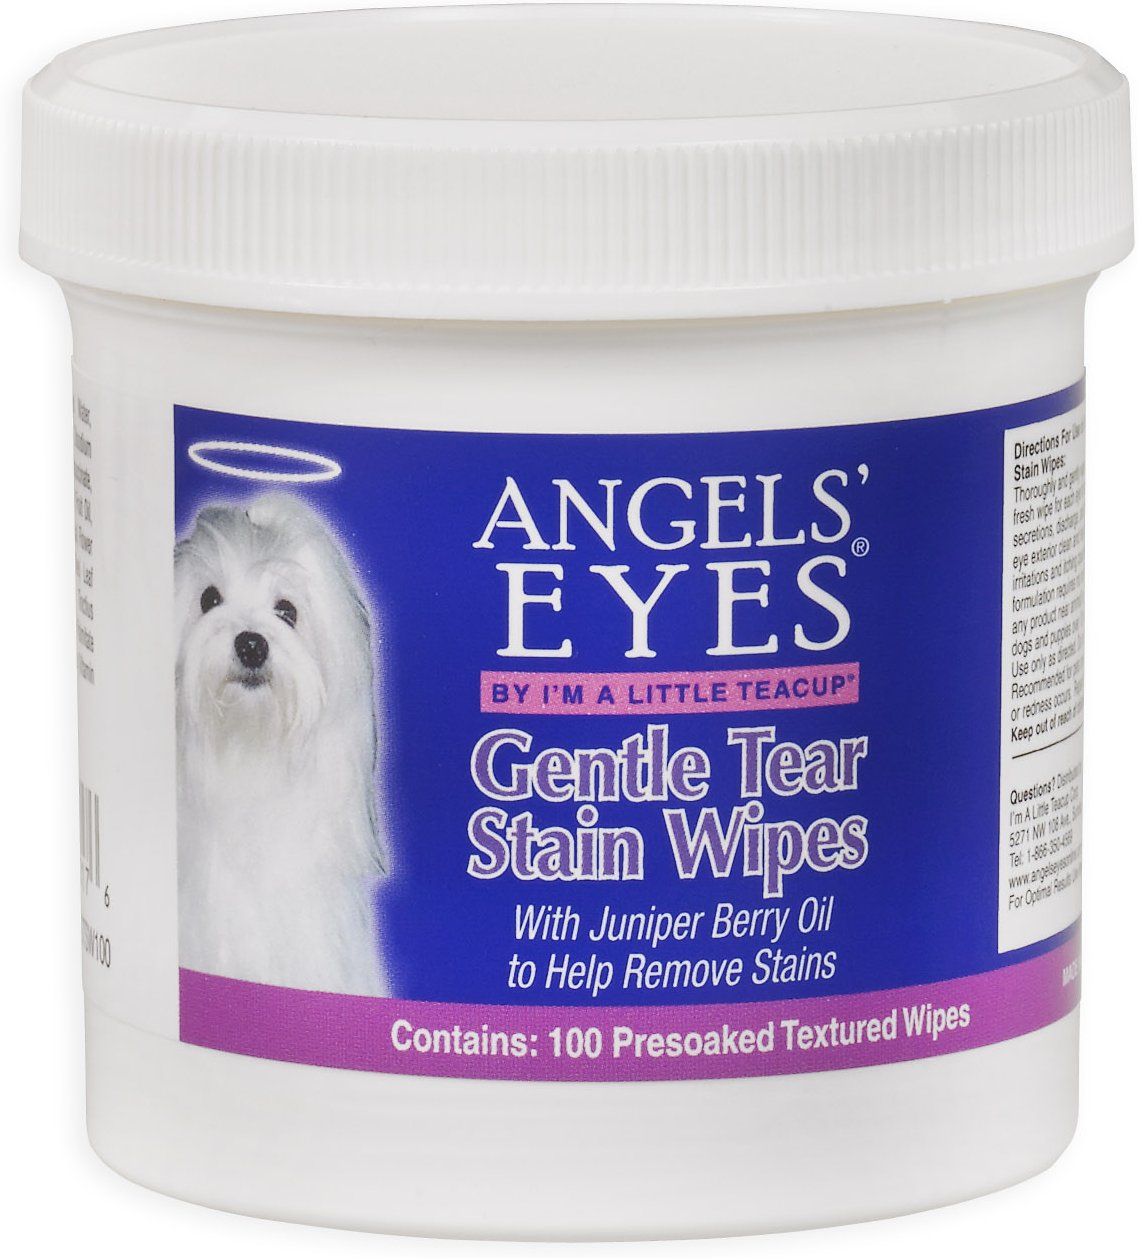 Angels' Eyes Gentle Tear Stain Wipes for Dogs, 100-count